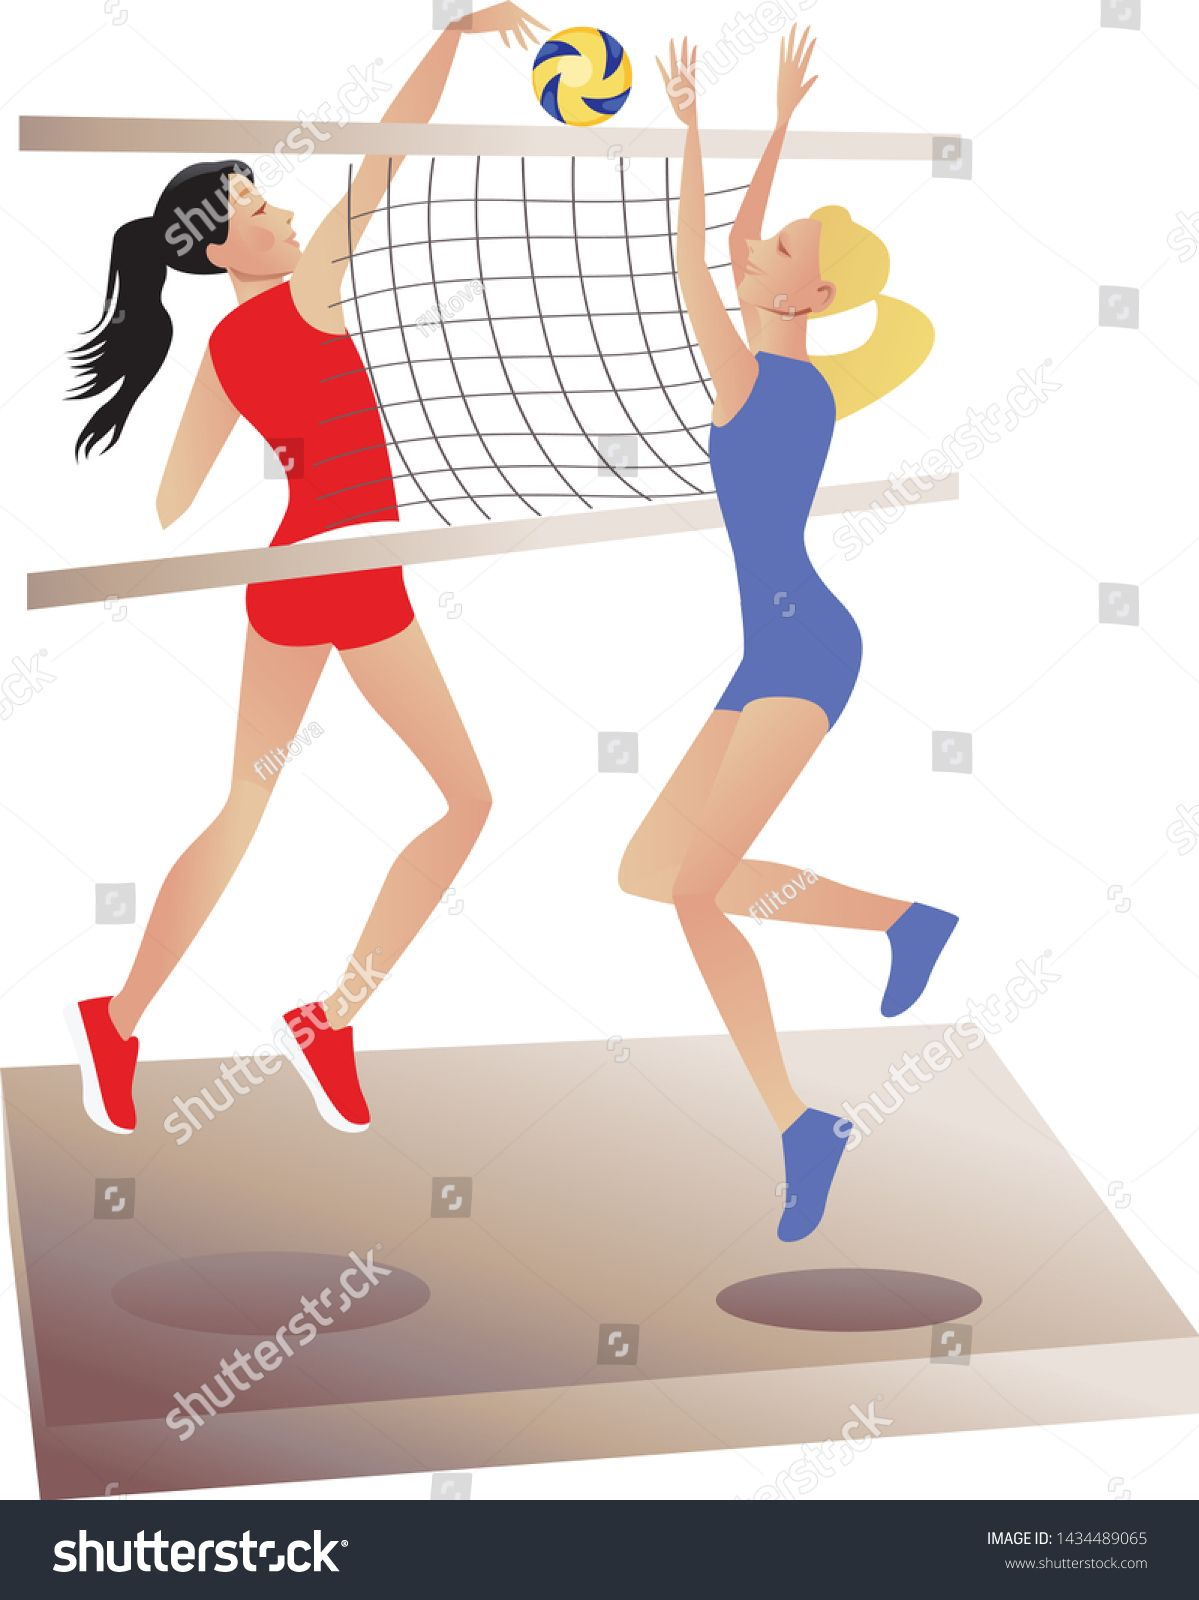 Volleyball Players Two Girls Playing Volleyball Sports Games Ball Games Vector Graphics Ad Ad Girls Play In 2020 Volleyball Players Two Girls Play Volleyball